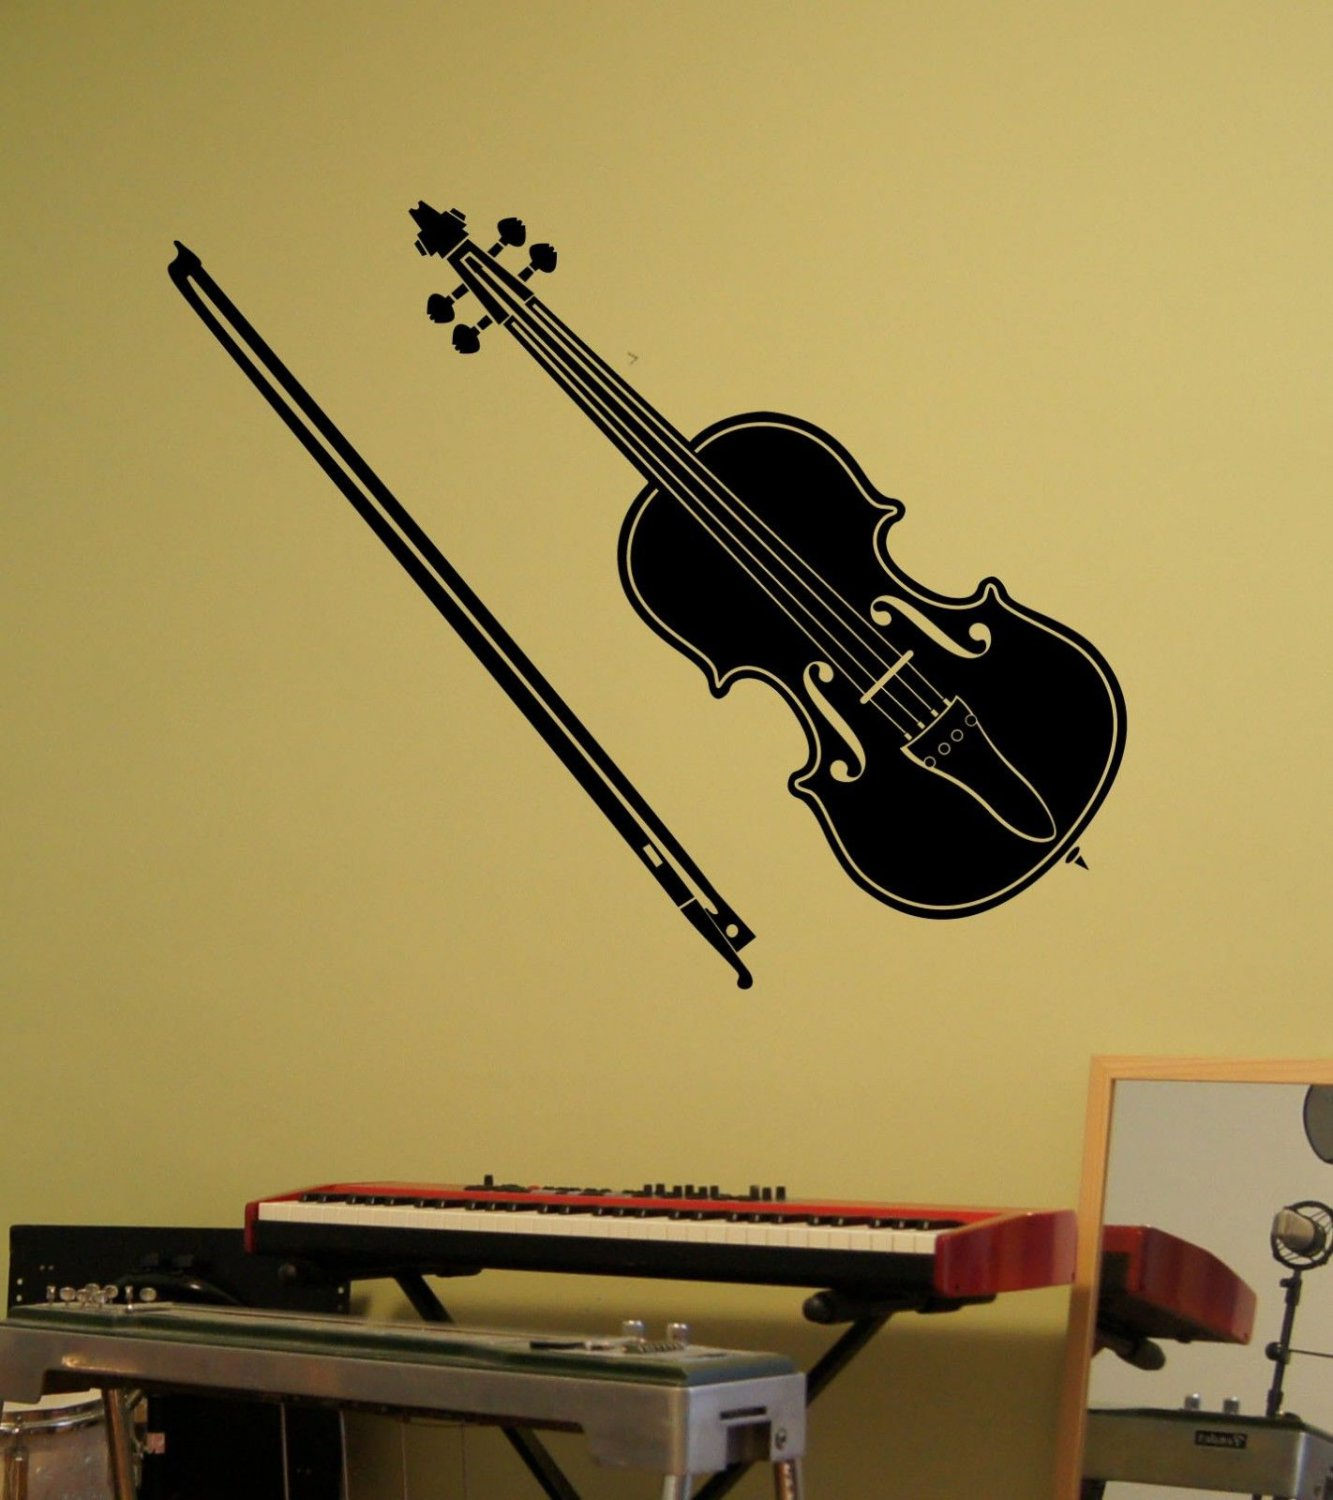 "Violin and Bow Musical Instrument Vinyl Wall Sticker Decal 9""h x 22""w"